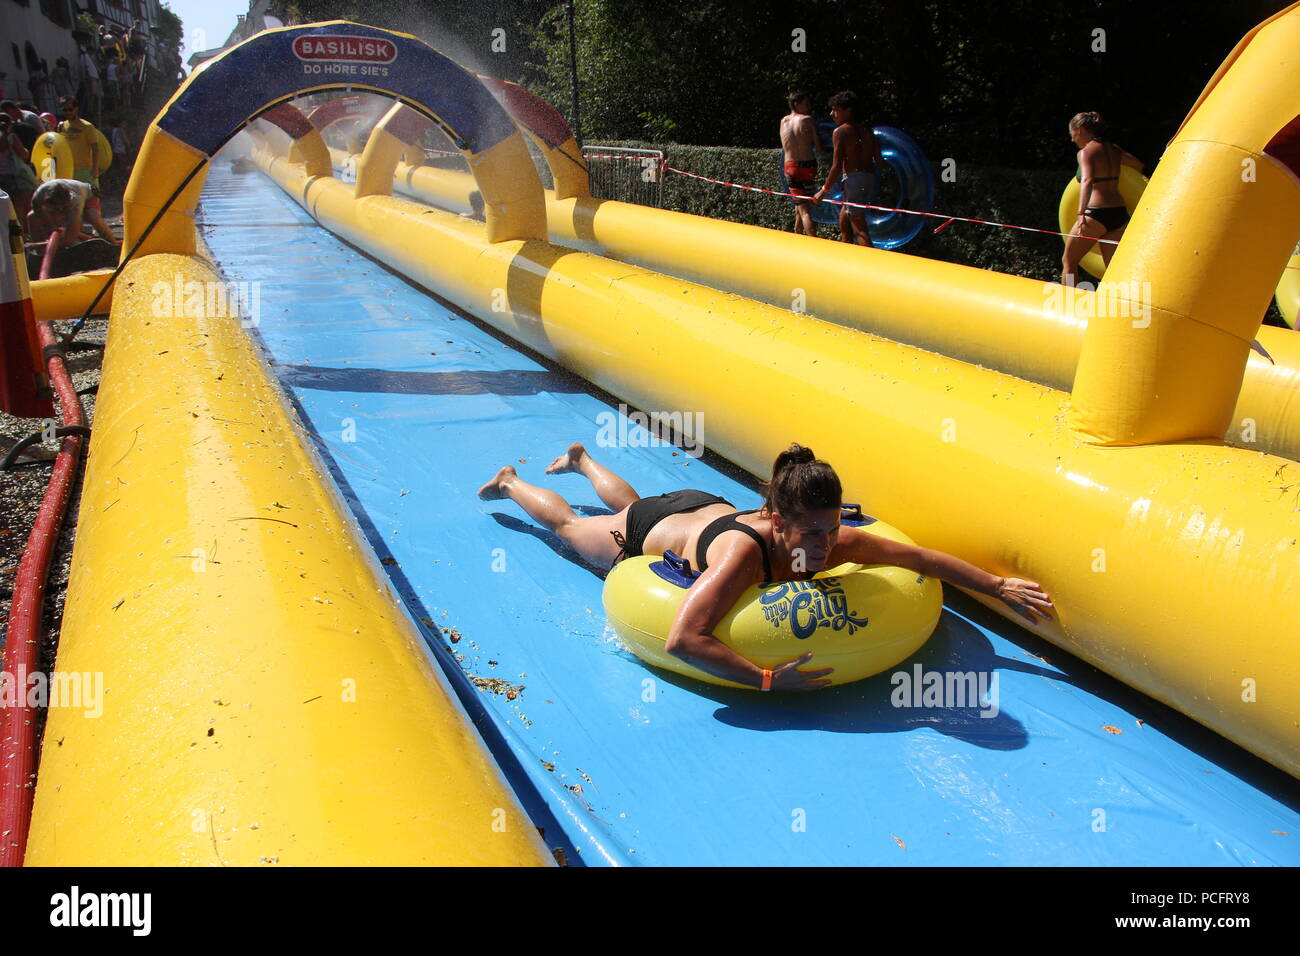 basel switzerland 1st aug 2018 people at the slide my city event